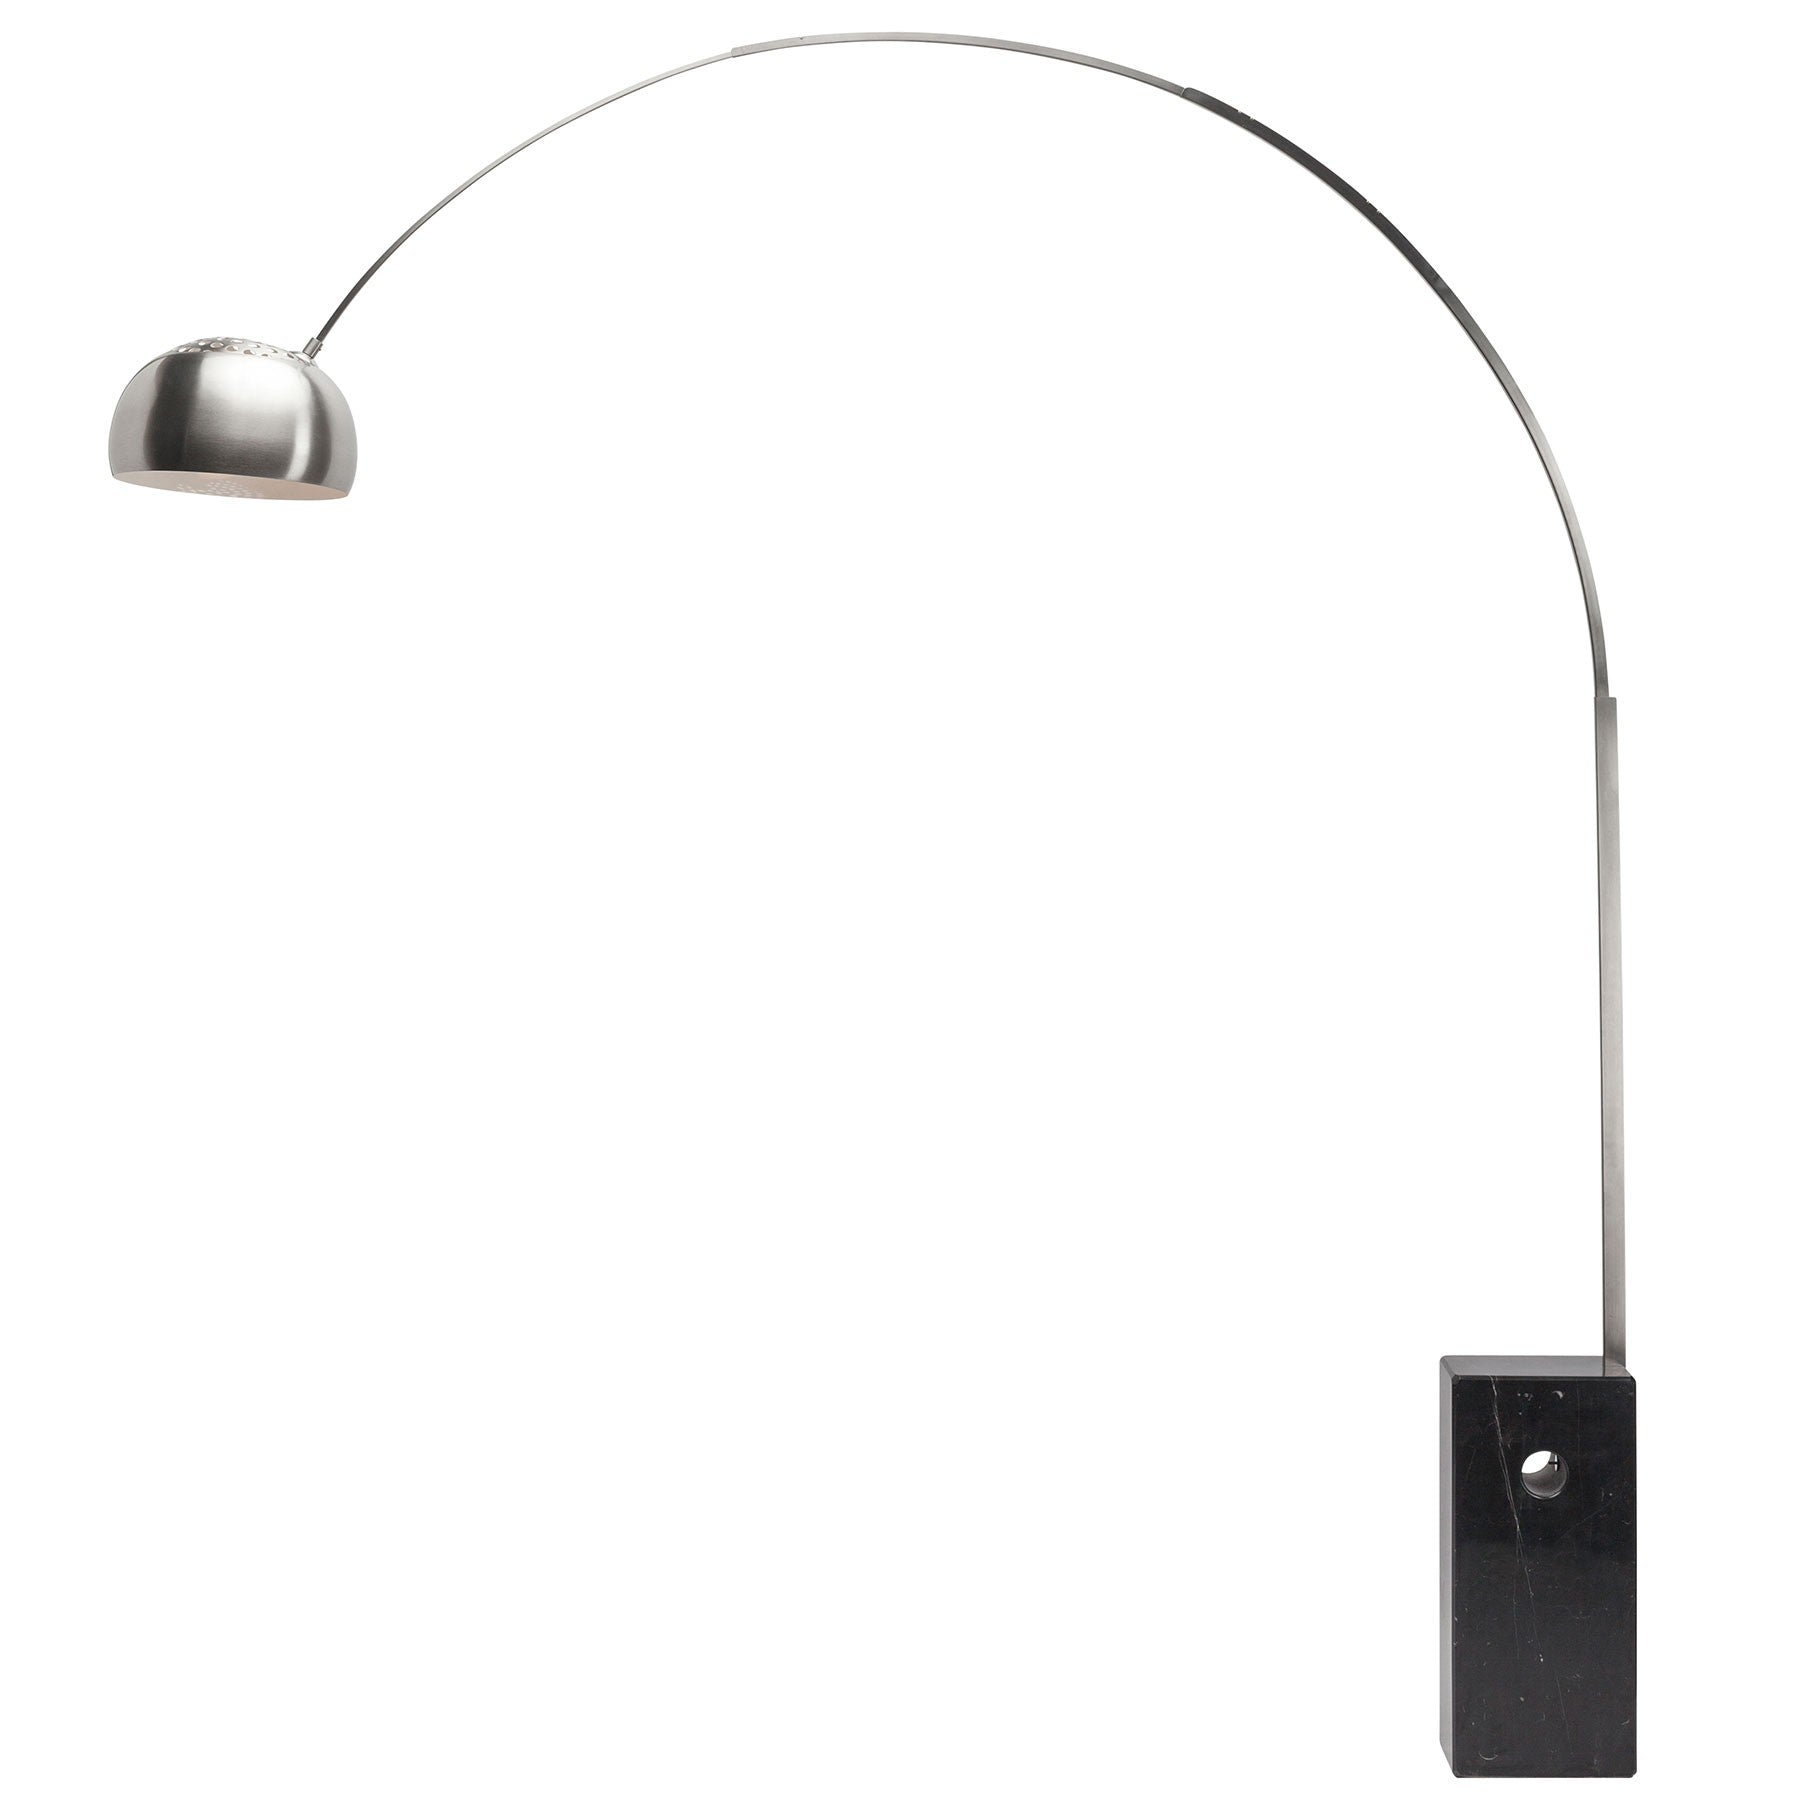 Curved floor lamp Mid Century Curved Floor Lamp In Brushed Stainless Steel With Black Base Officedeskcom Officedeskcom Curved Floor Lamp In Brushed Stainless Steel With Black Base